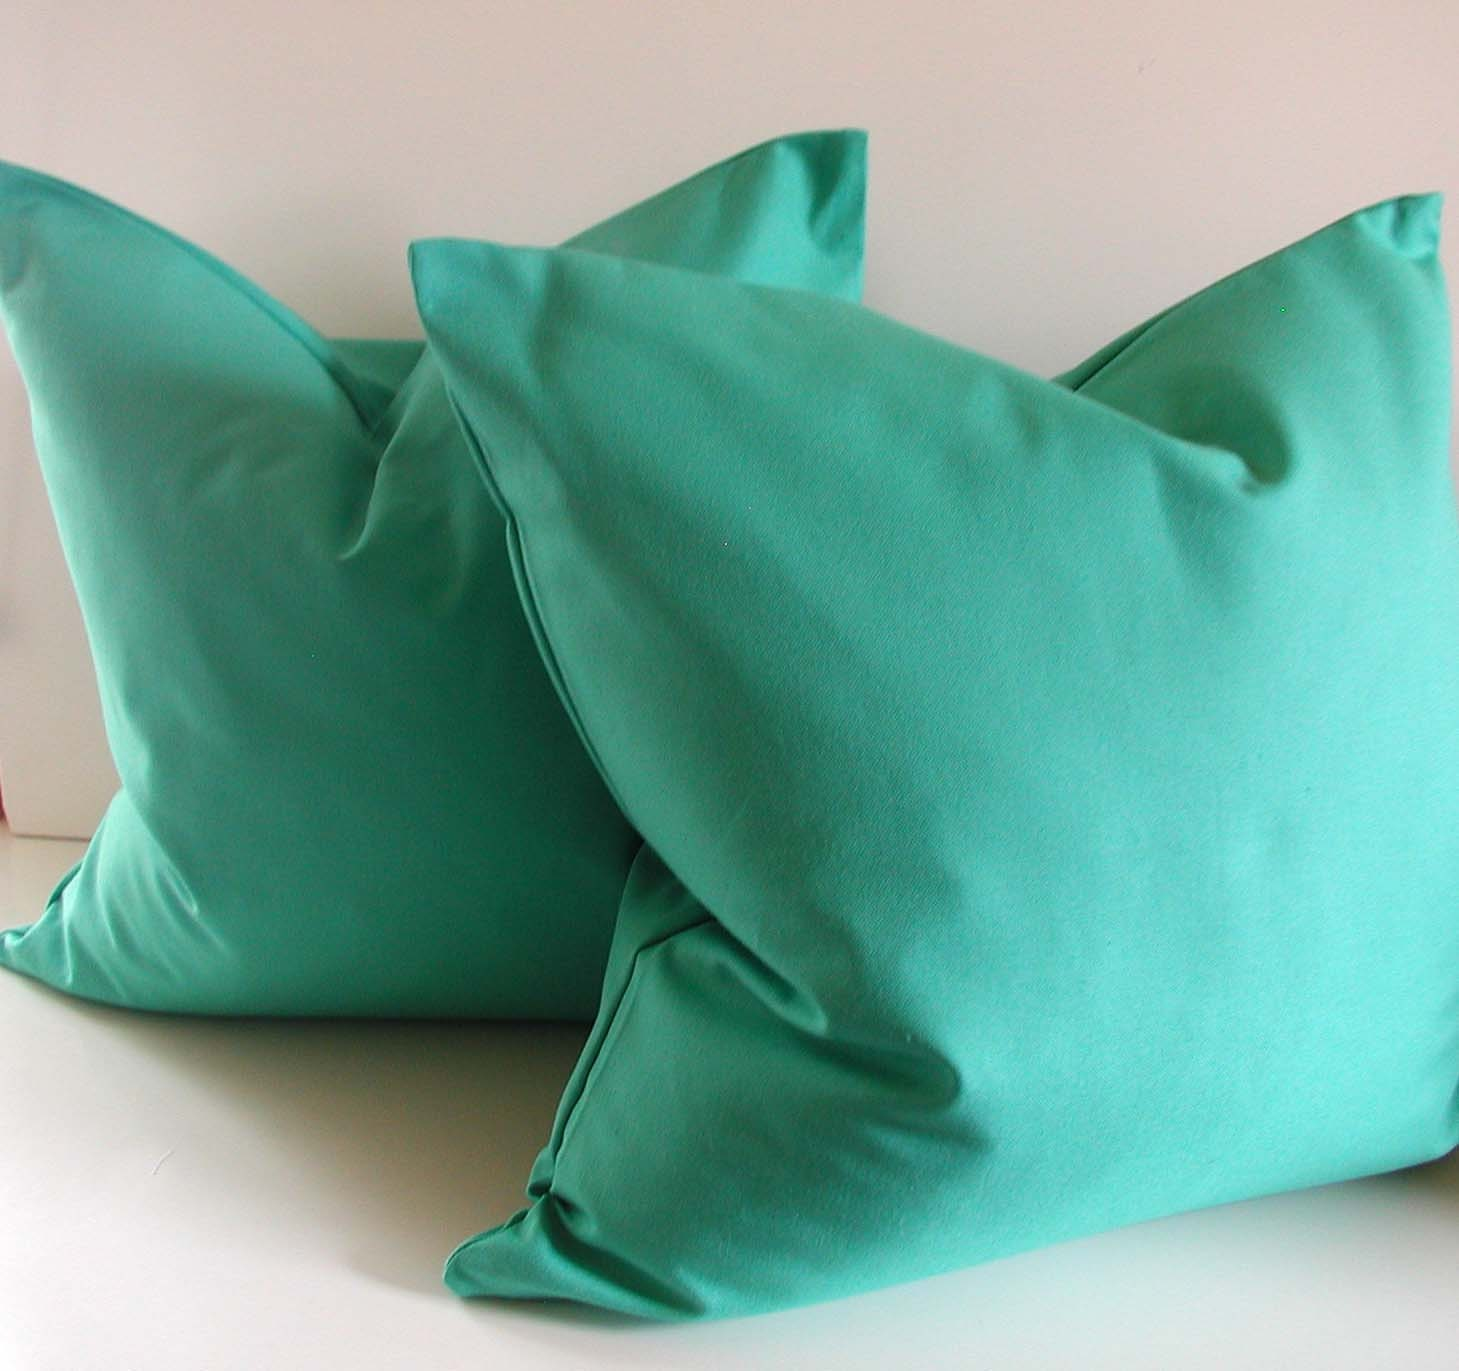 Decorative Pillows In Turquoise : Set of Two Turquoise Pillows 20 inch Decorative Pillow